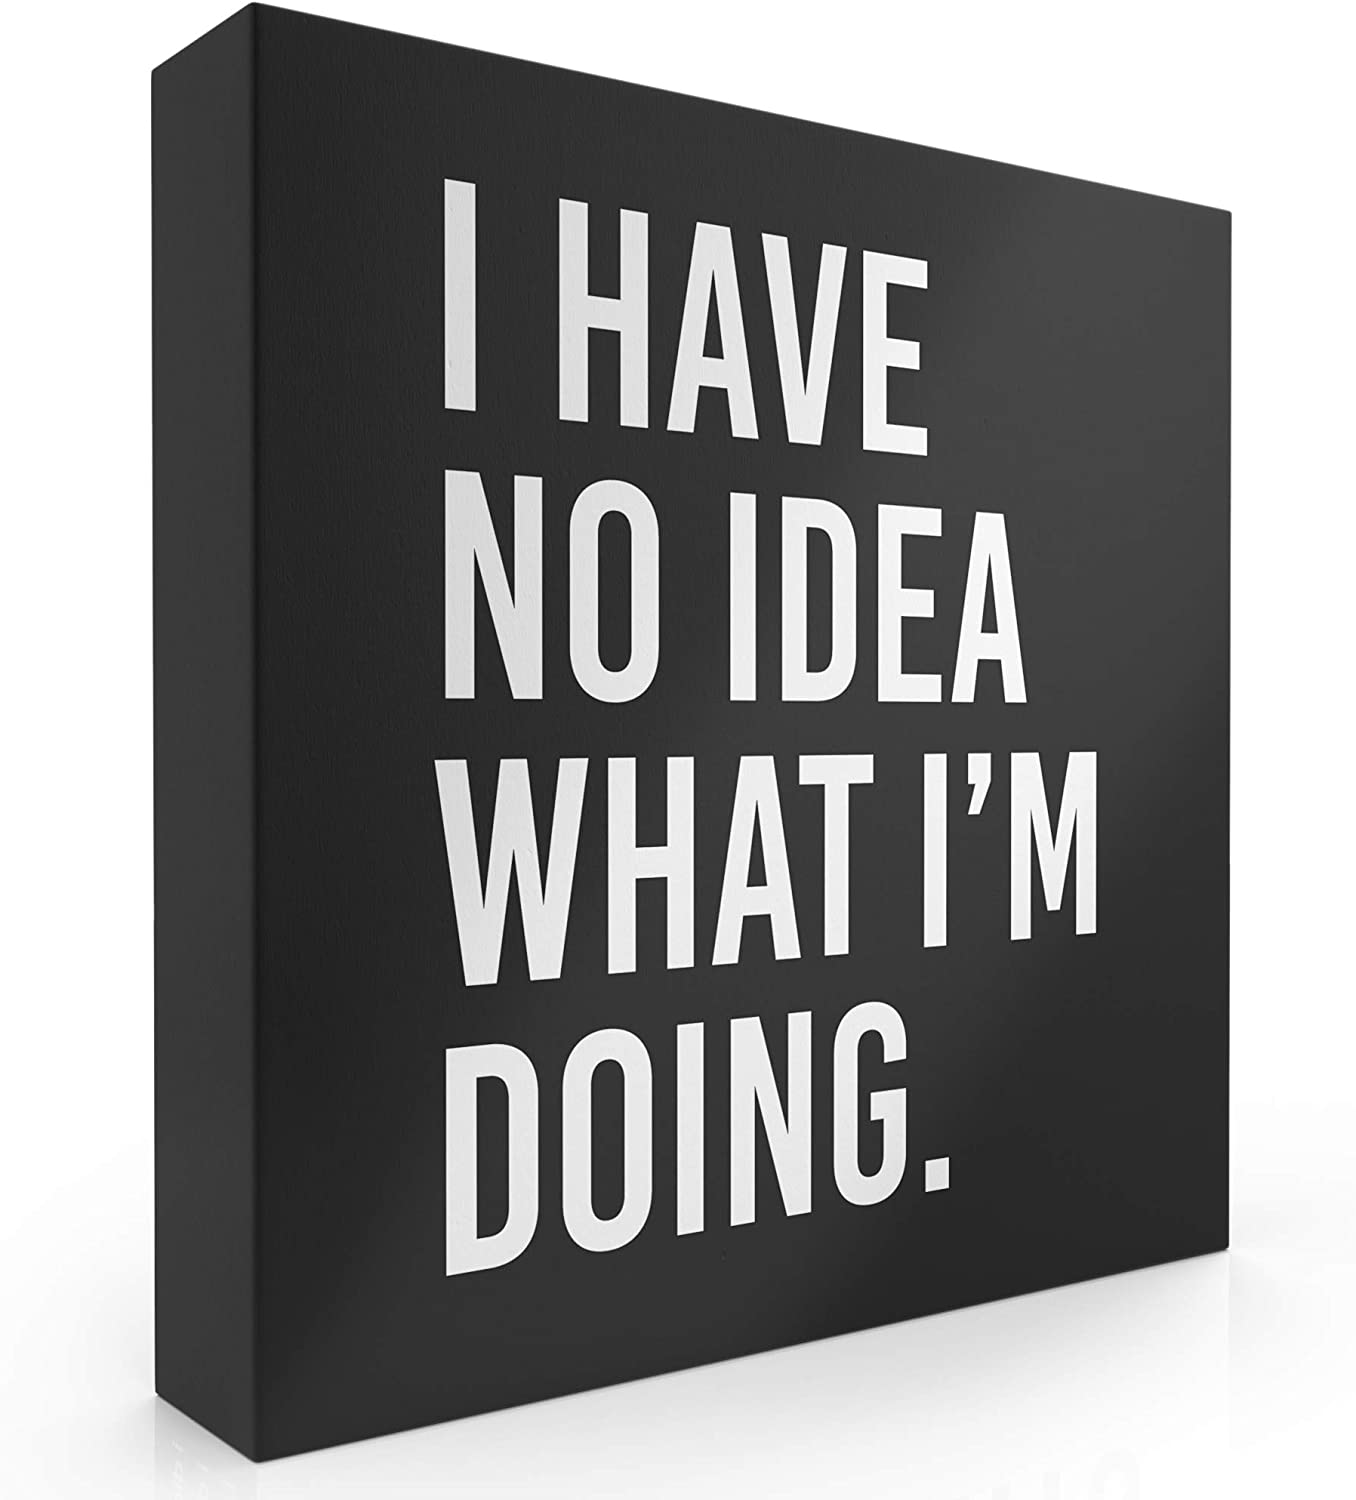 "Modern Market I Have No Idea What I'm Doing Box Sign Modern Funny Quote Home Decor Wooden Sign with Sayings 8"" x 8"""